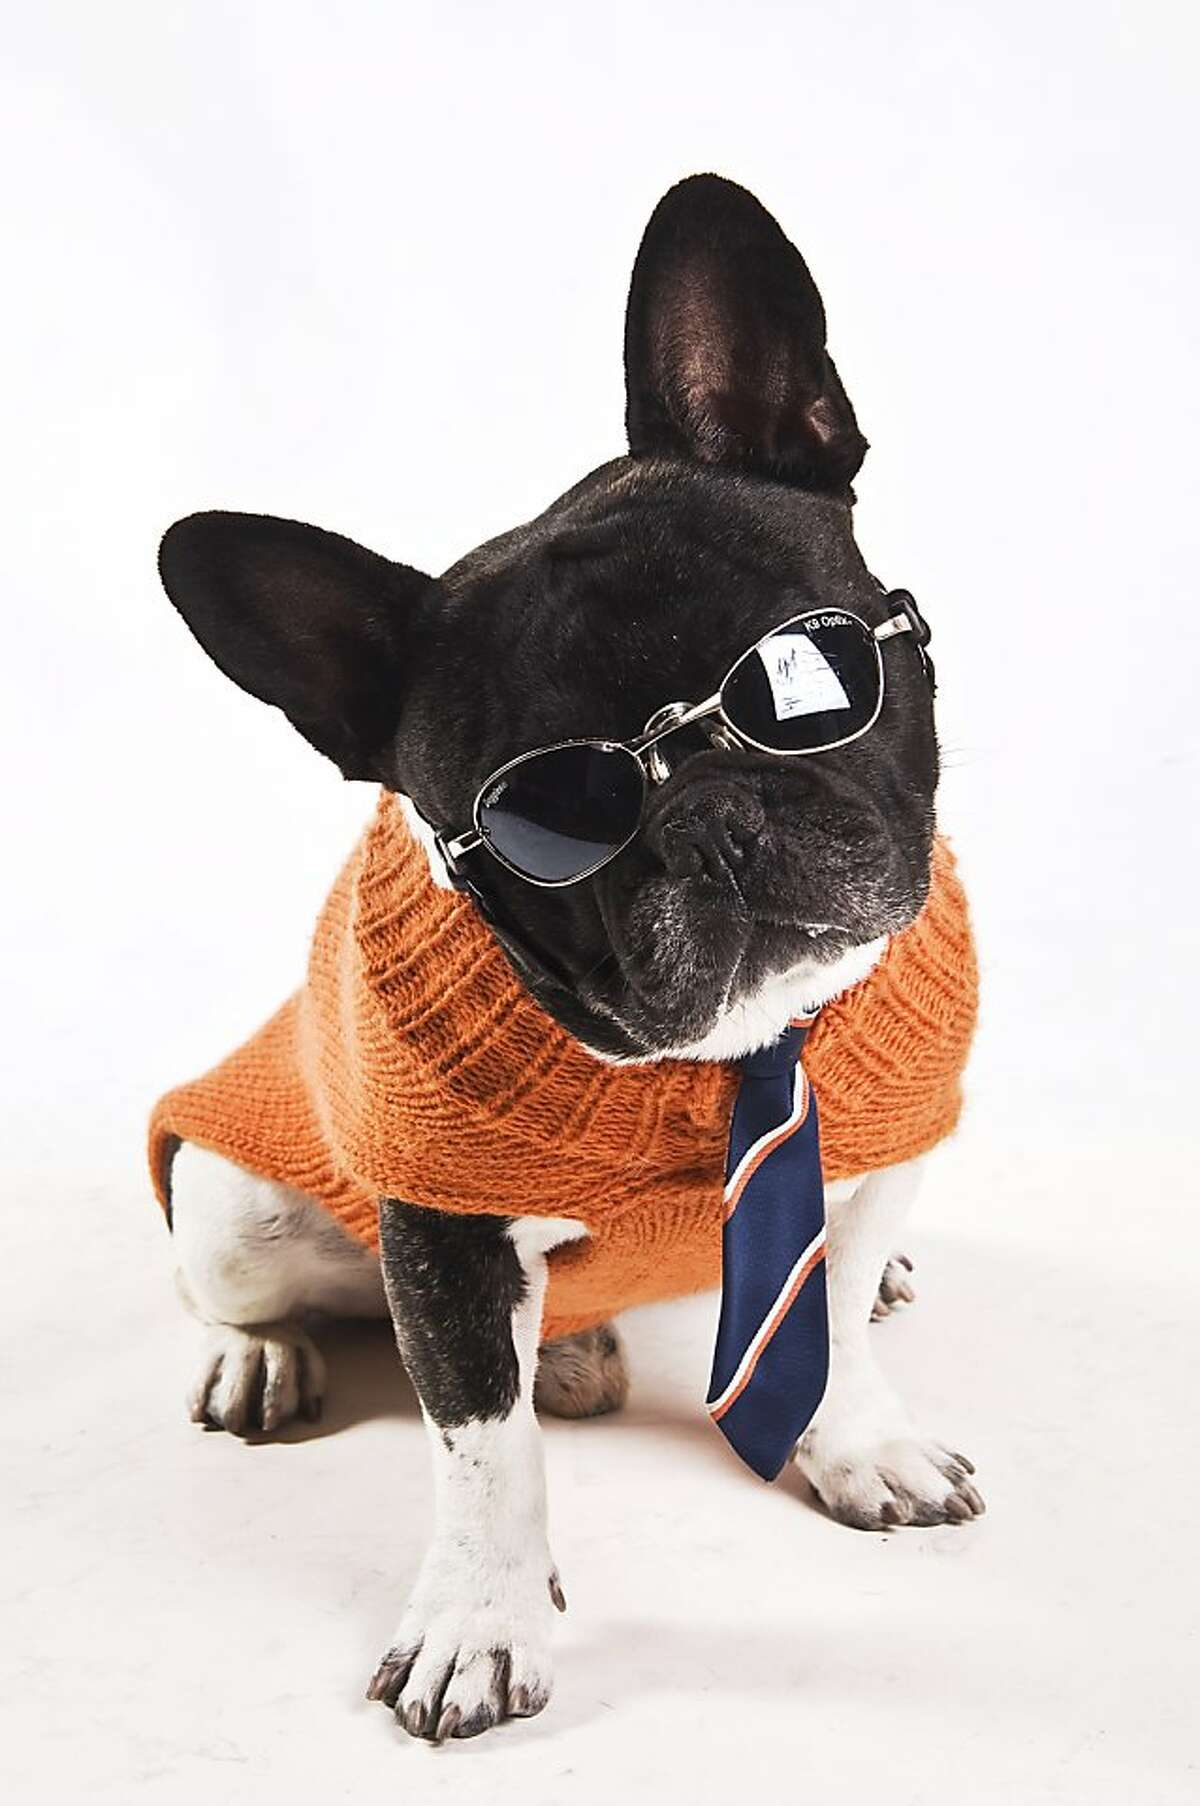 Satchmo, a French Bulldog, is wearing an orange wool turtleneck sweater with a repp-striped tie. Satchmo is the dog of Paula West. Haute Dog SF a fashion show of San Francisco's fashion aware dogs held Friday February 3, 2012 at the San Francisco Design Center. The show included 60+ dogs taking to the runway to strut their stuff. The event was a benefit for Canine Companions.